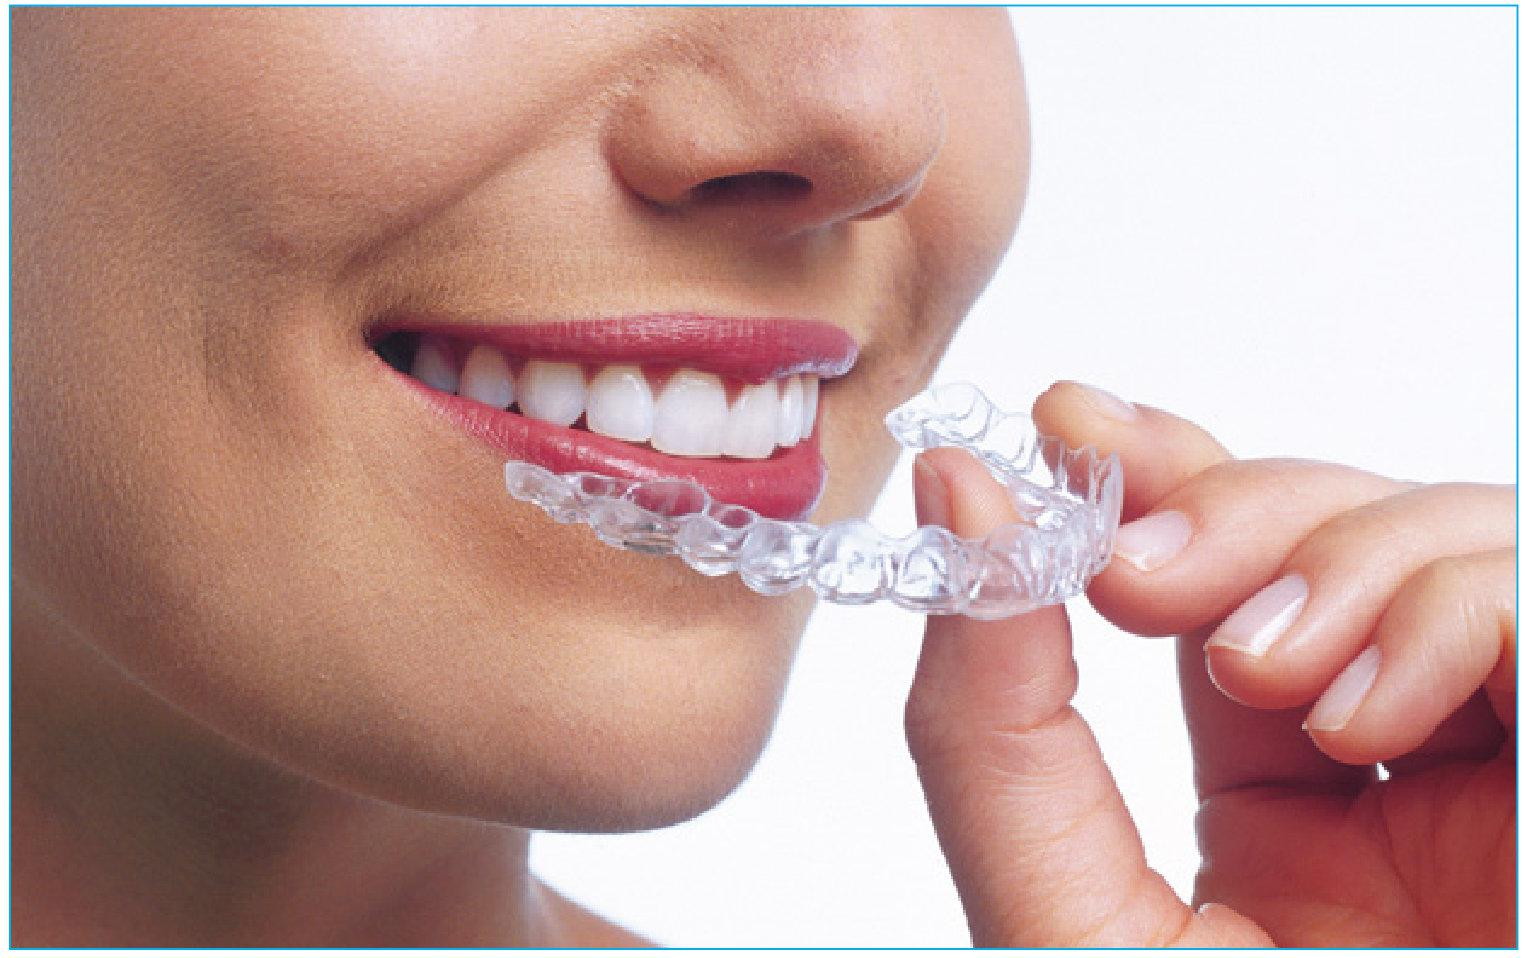 Clear Aligners: The New Way to Get Your Smile Straightened